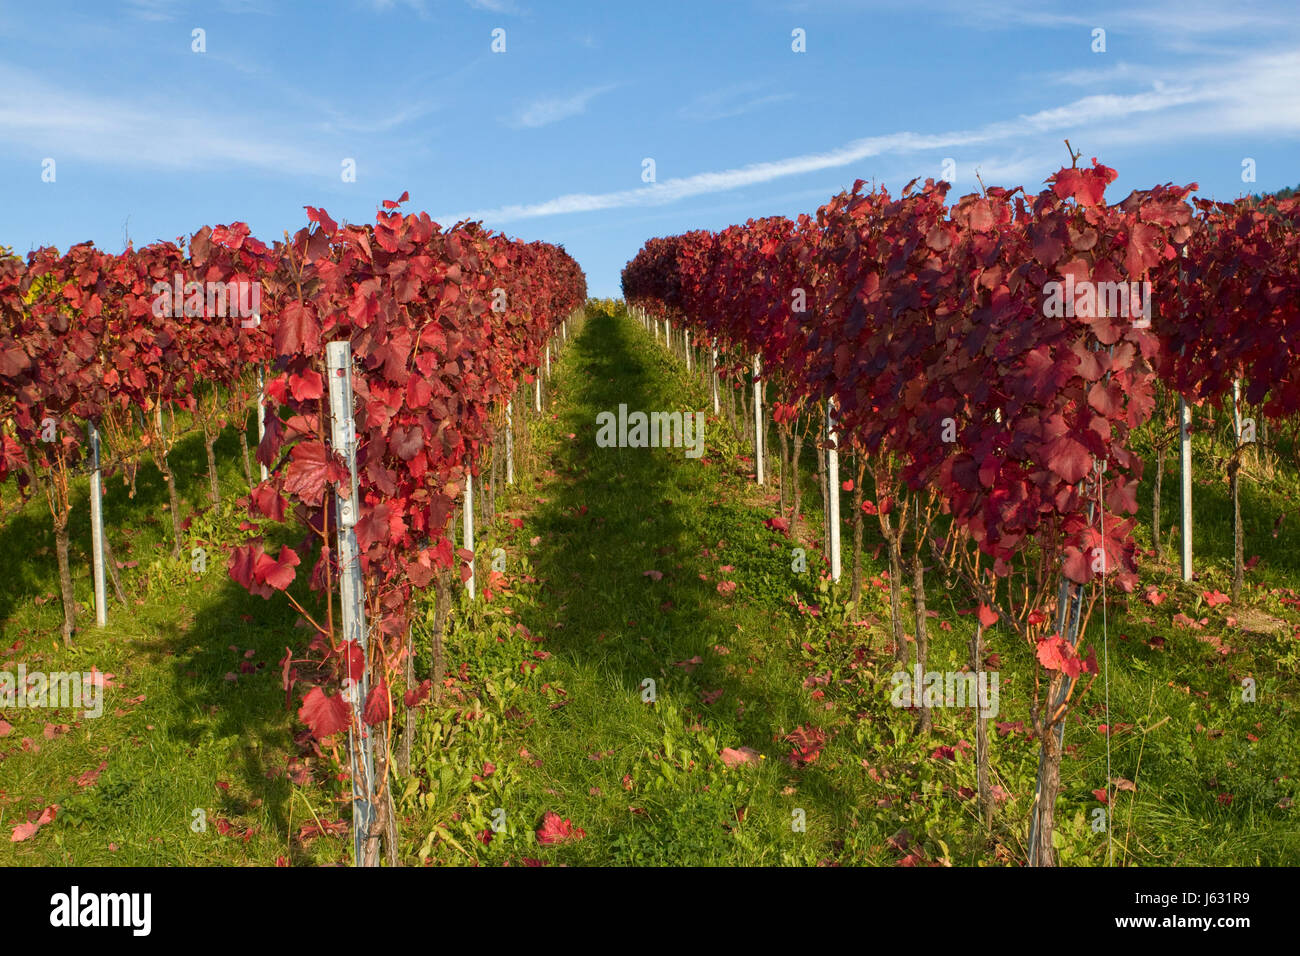 cultivation of wine vines viticulture fall autumn leaves agriculture farming Stock Photo